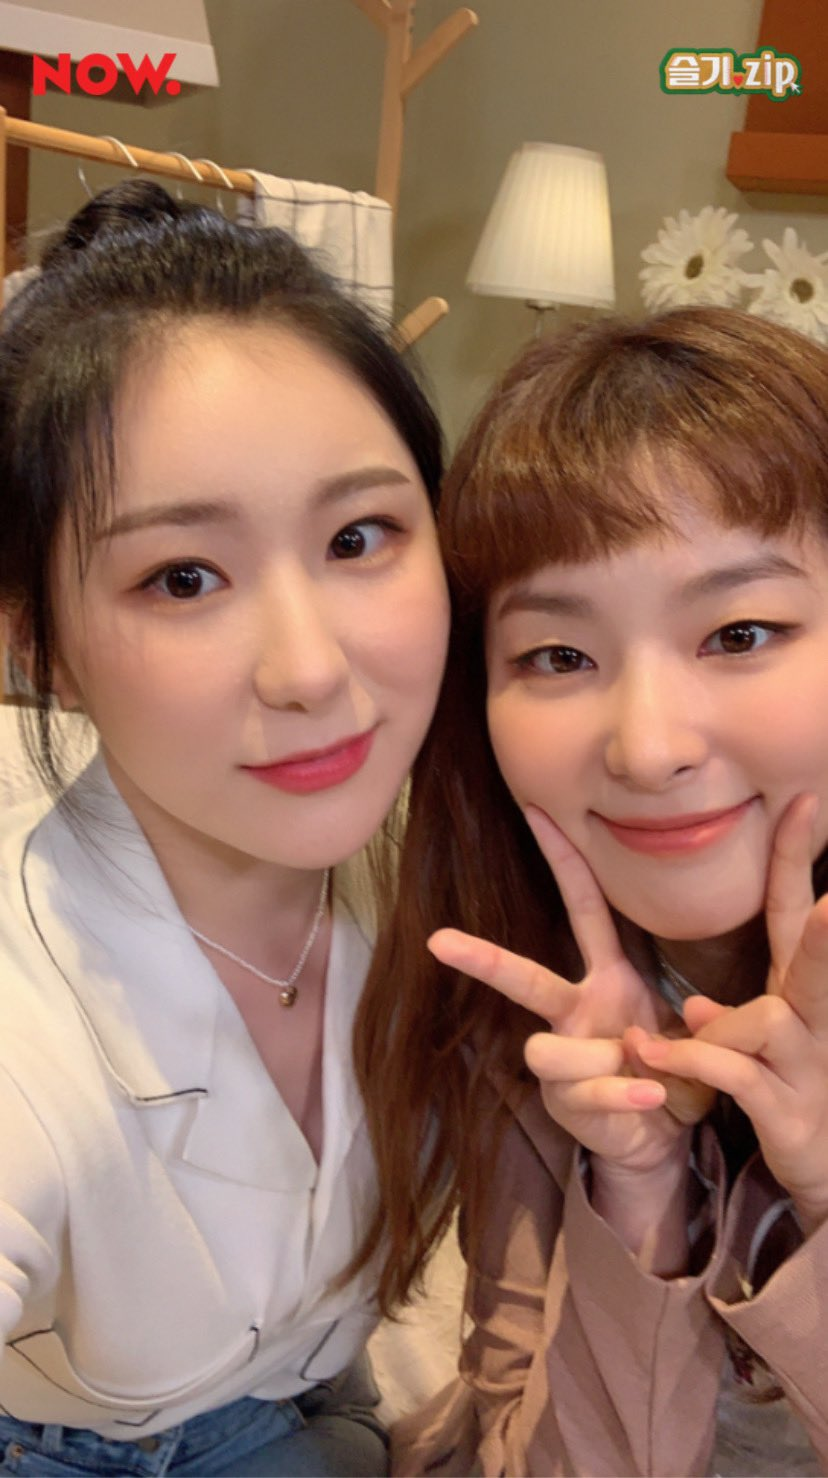 Watch and download Korean drama, movies, Kshow and other Seulgi ...